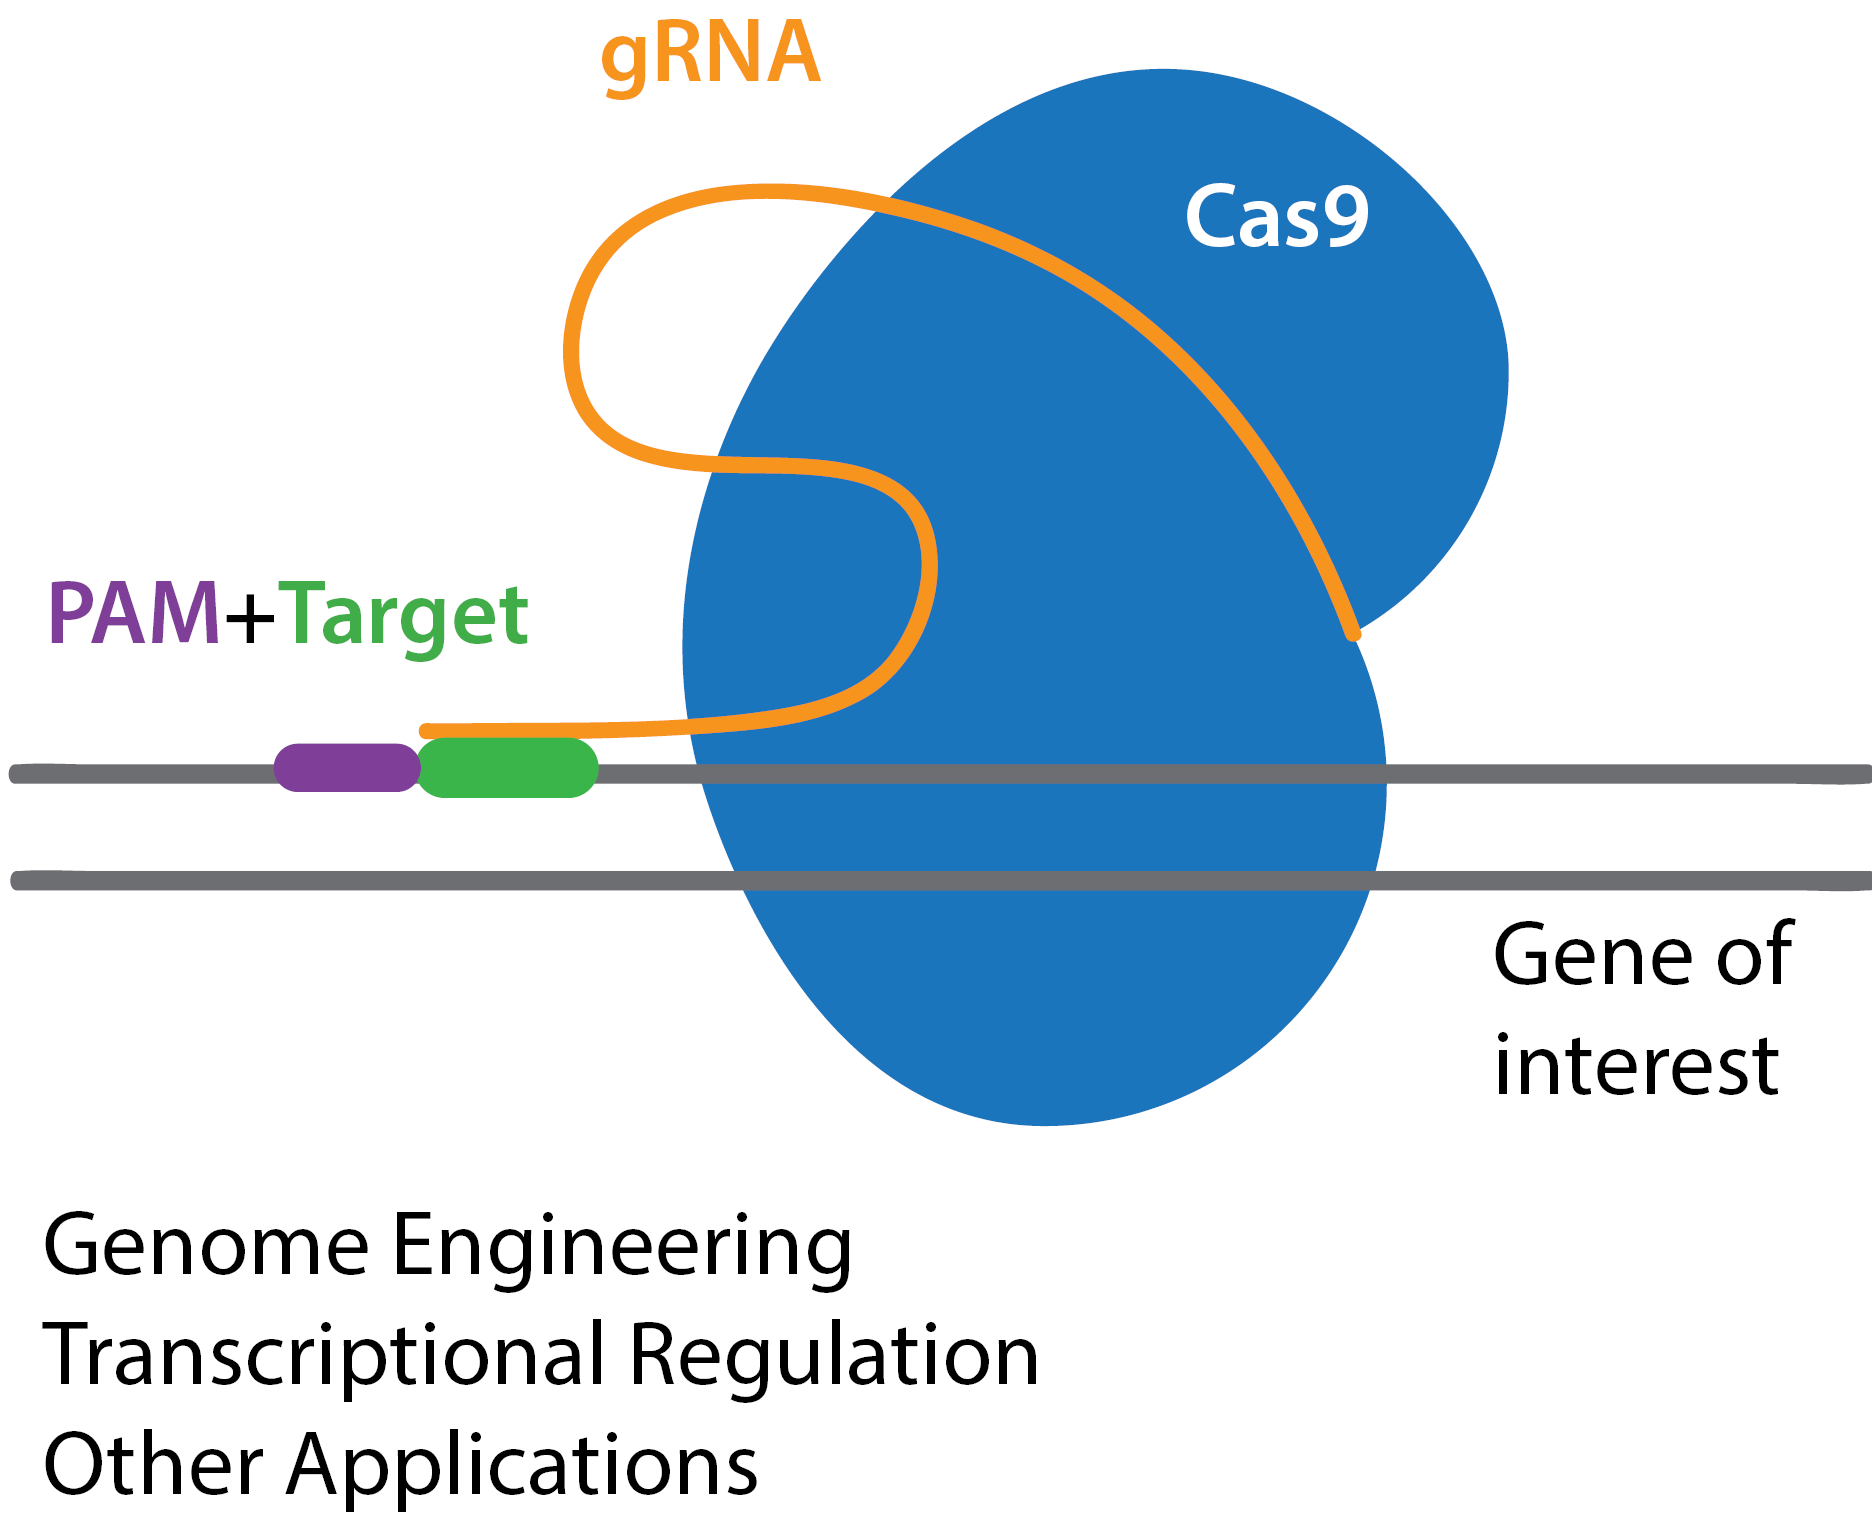 Key components of CRISPR-Cas9: Cas9 endonuclease, gRNA, PAM, and target sequence. CRISPR applications: genome engineering, transcriptional regulation, and other applications.